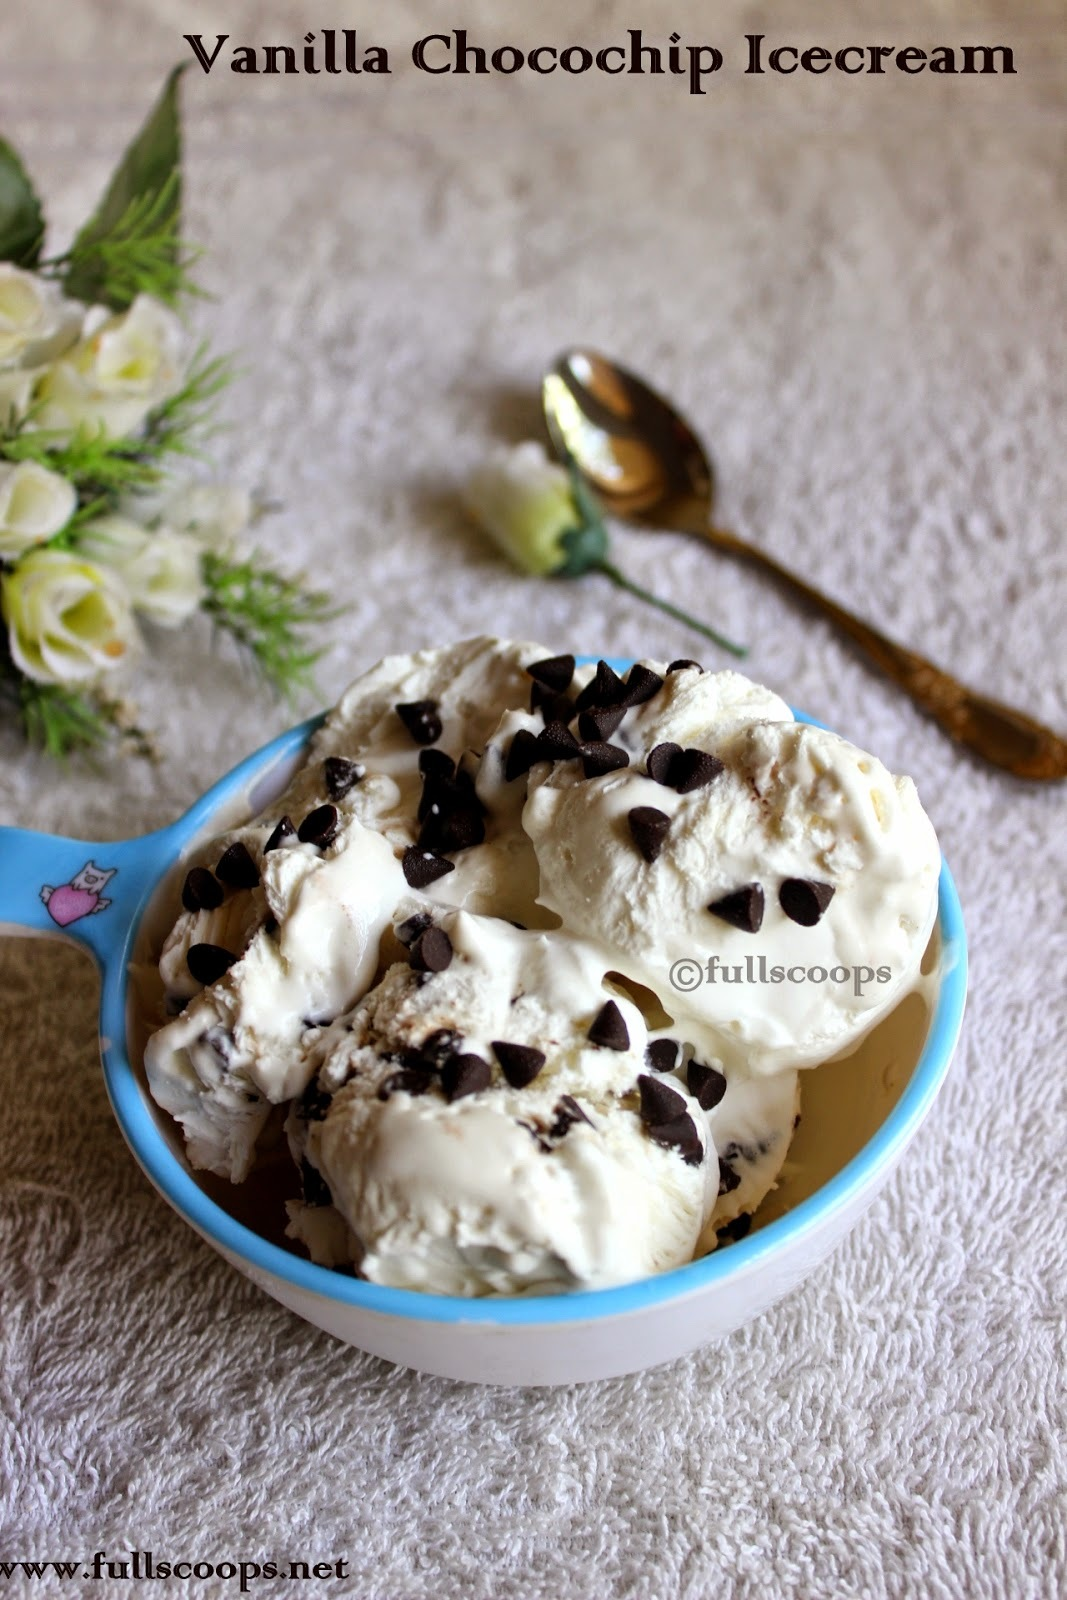 Vanilla Chocochip Ice cream - A Guest Post by Beulah